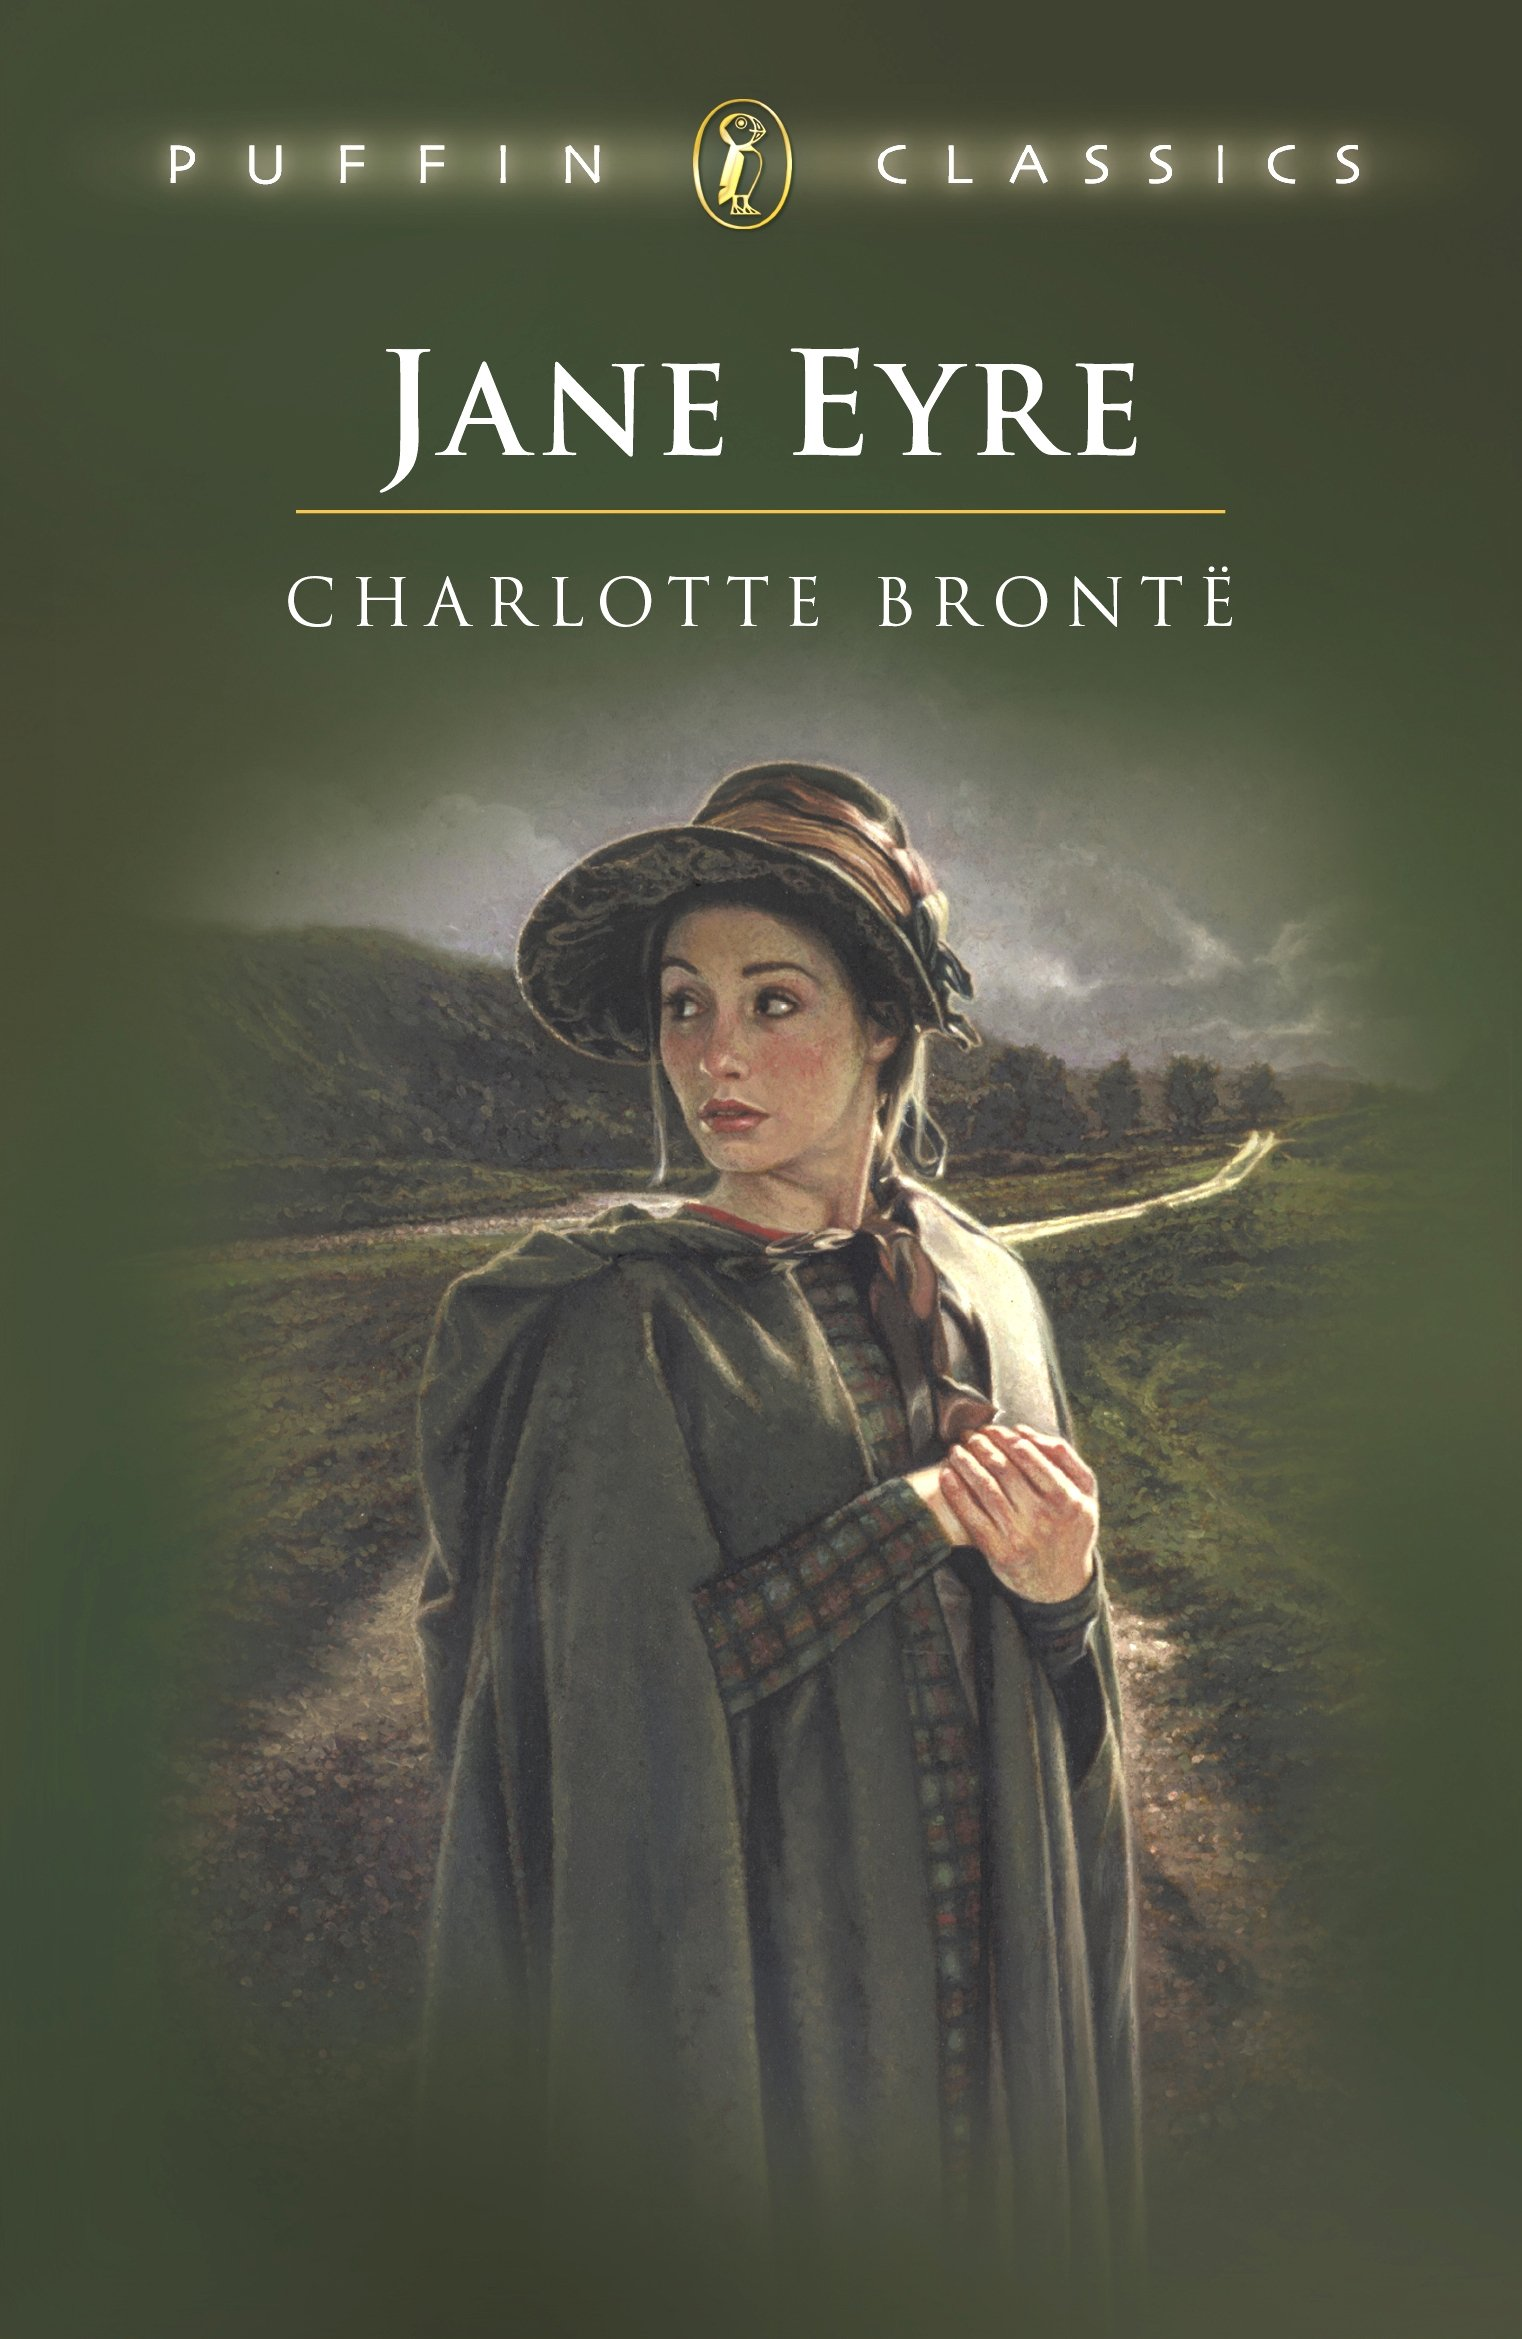 an analysis of aspects of charlotte and emily bronte on the decision to write the novels jane eyre a Ap english iii charlotte bronte wrote jane eyre in prejudice and emily bronte's jane eyre  christianity and evangelism in jane eyre there were.